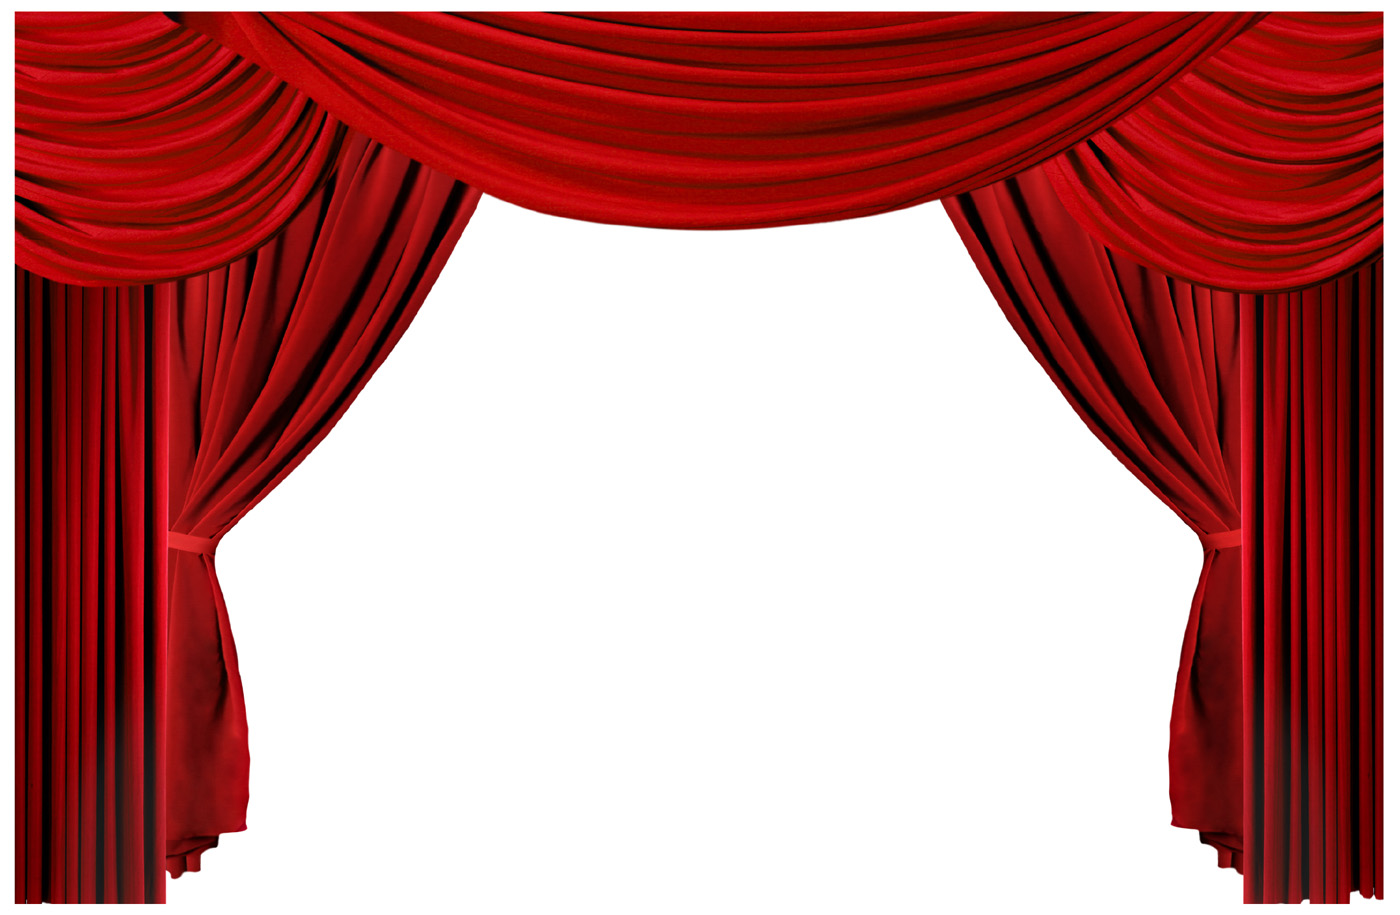 Red curtain curtain 11054